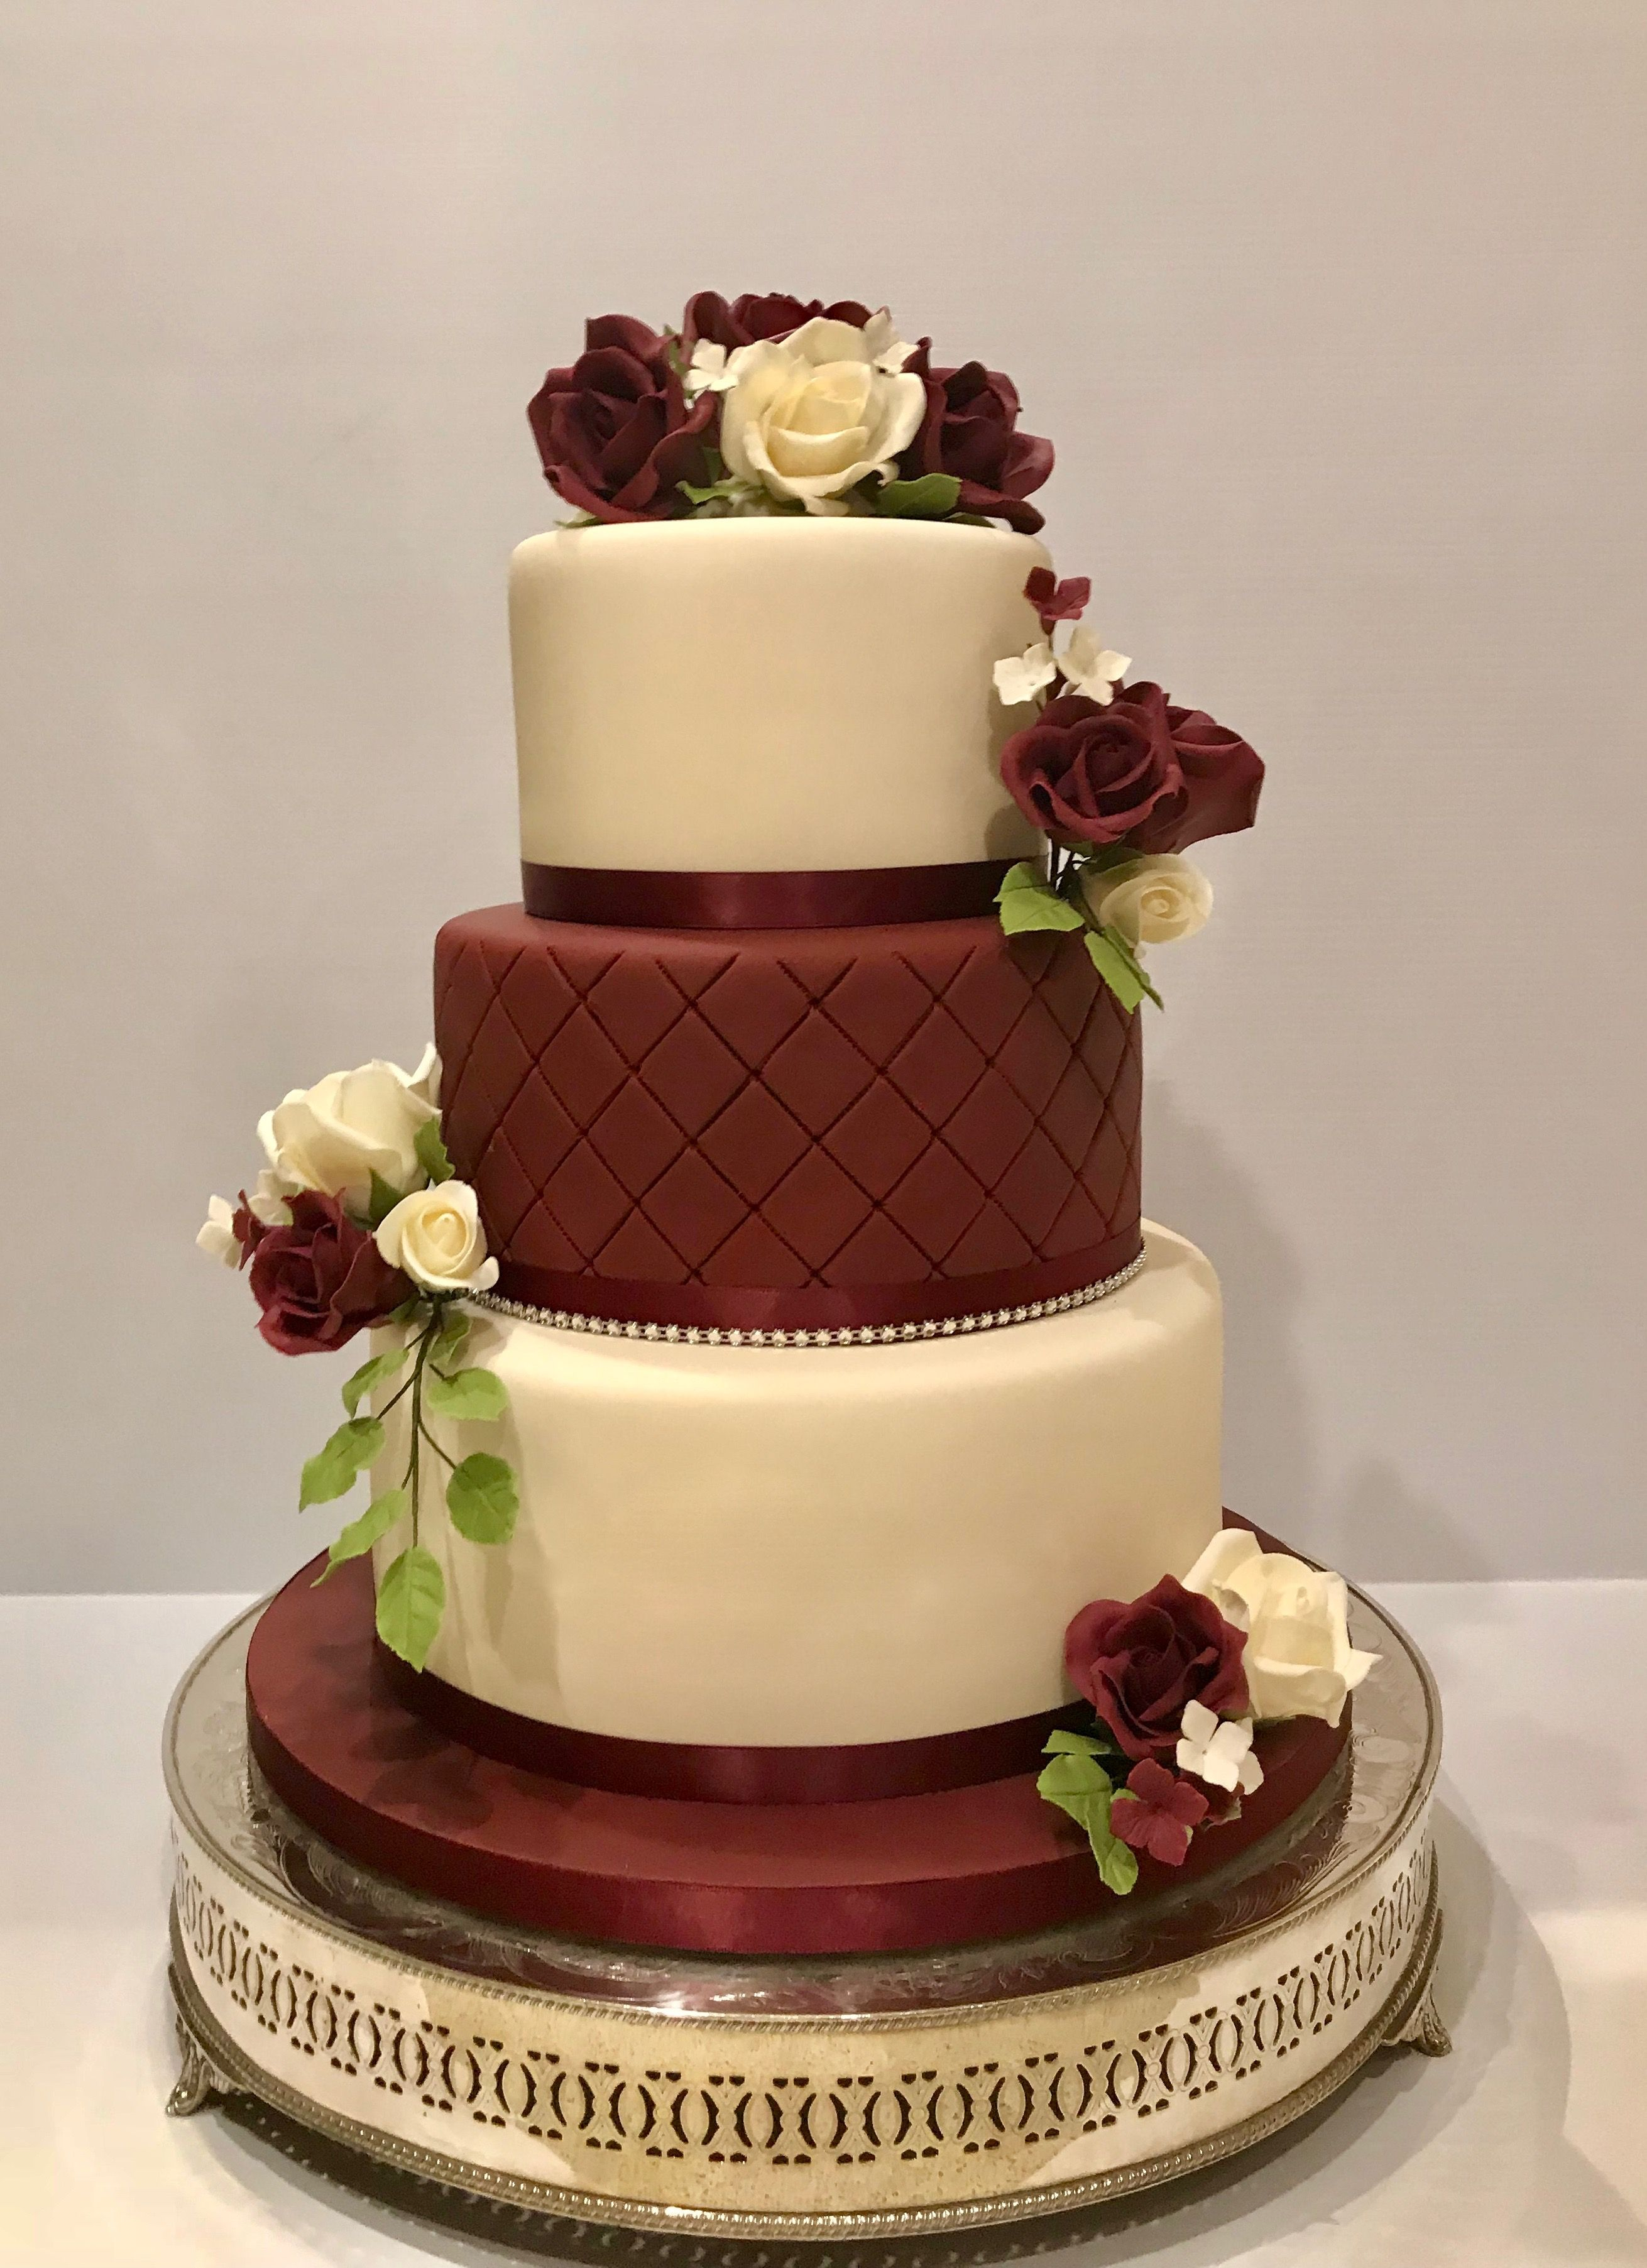 Maroon Quilted Middle Tier With Sugar Roses Burgundy Wedding Cake Romantic Wedding Cake Wedding Cakes Maroon